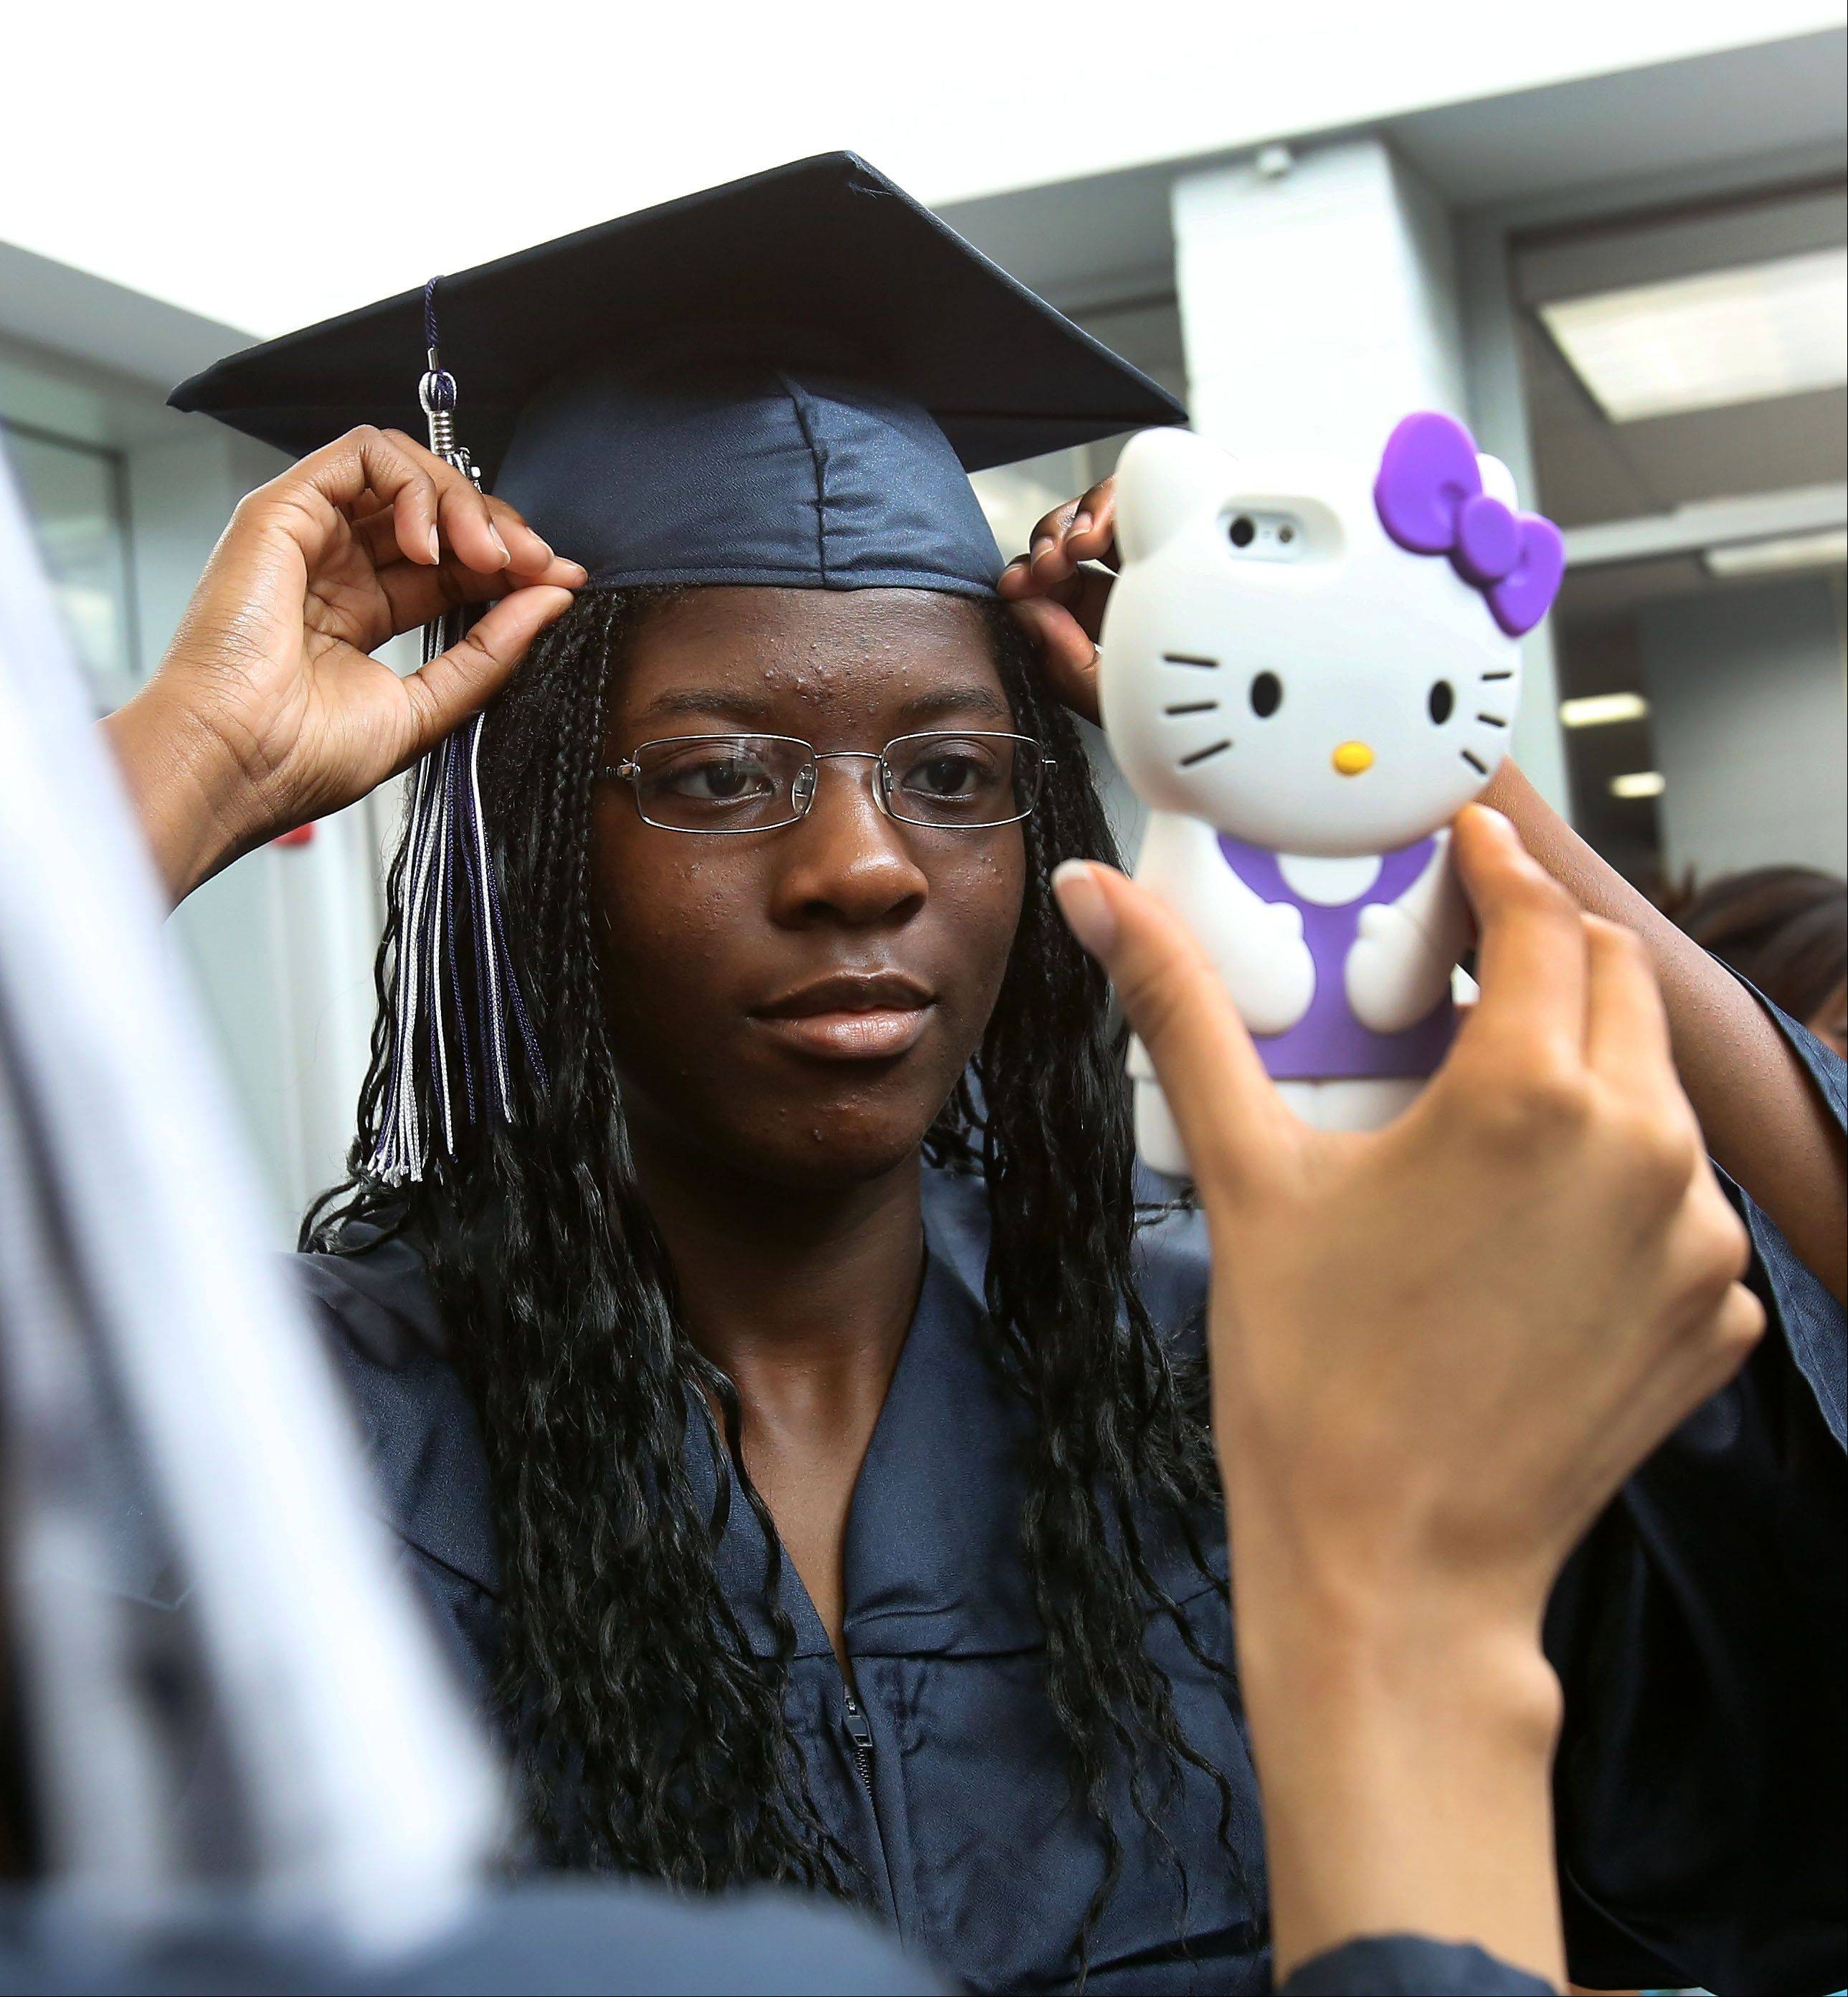 Adjowa Bio adjusts her cap using an iPhone camera before graduation at Lisle High School on Friday.